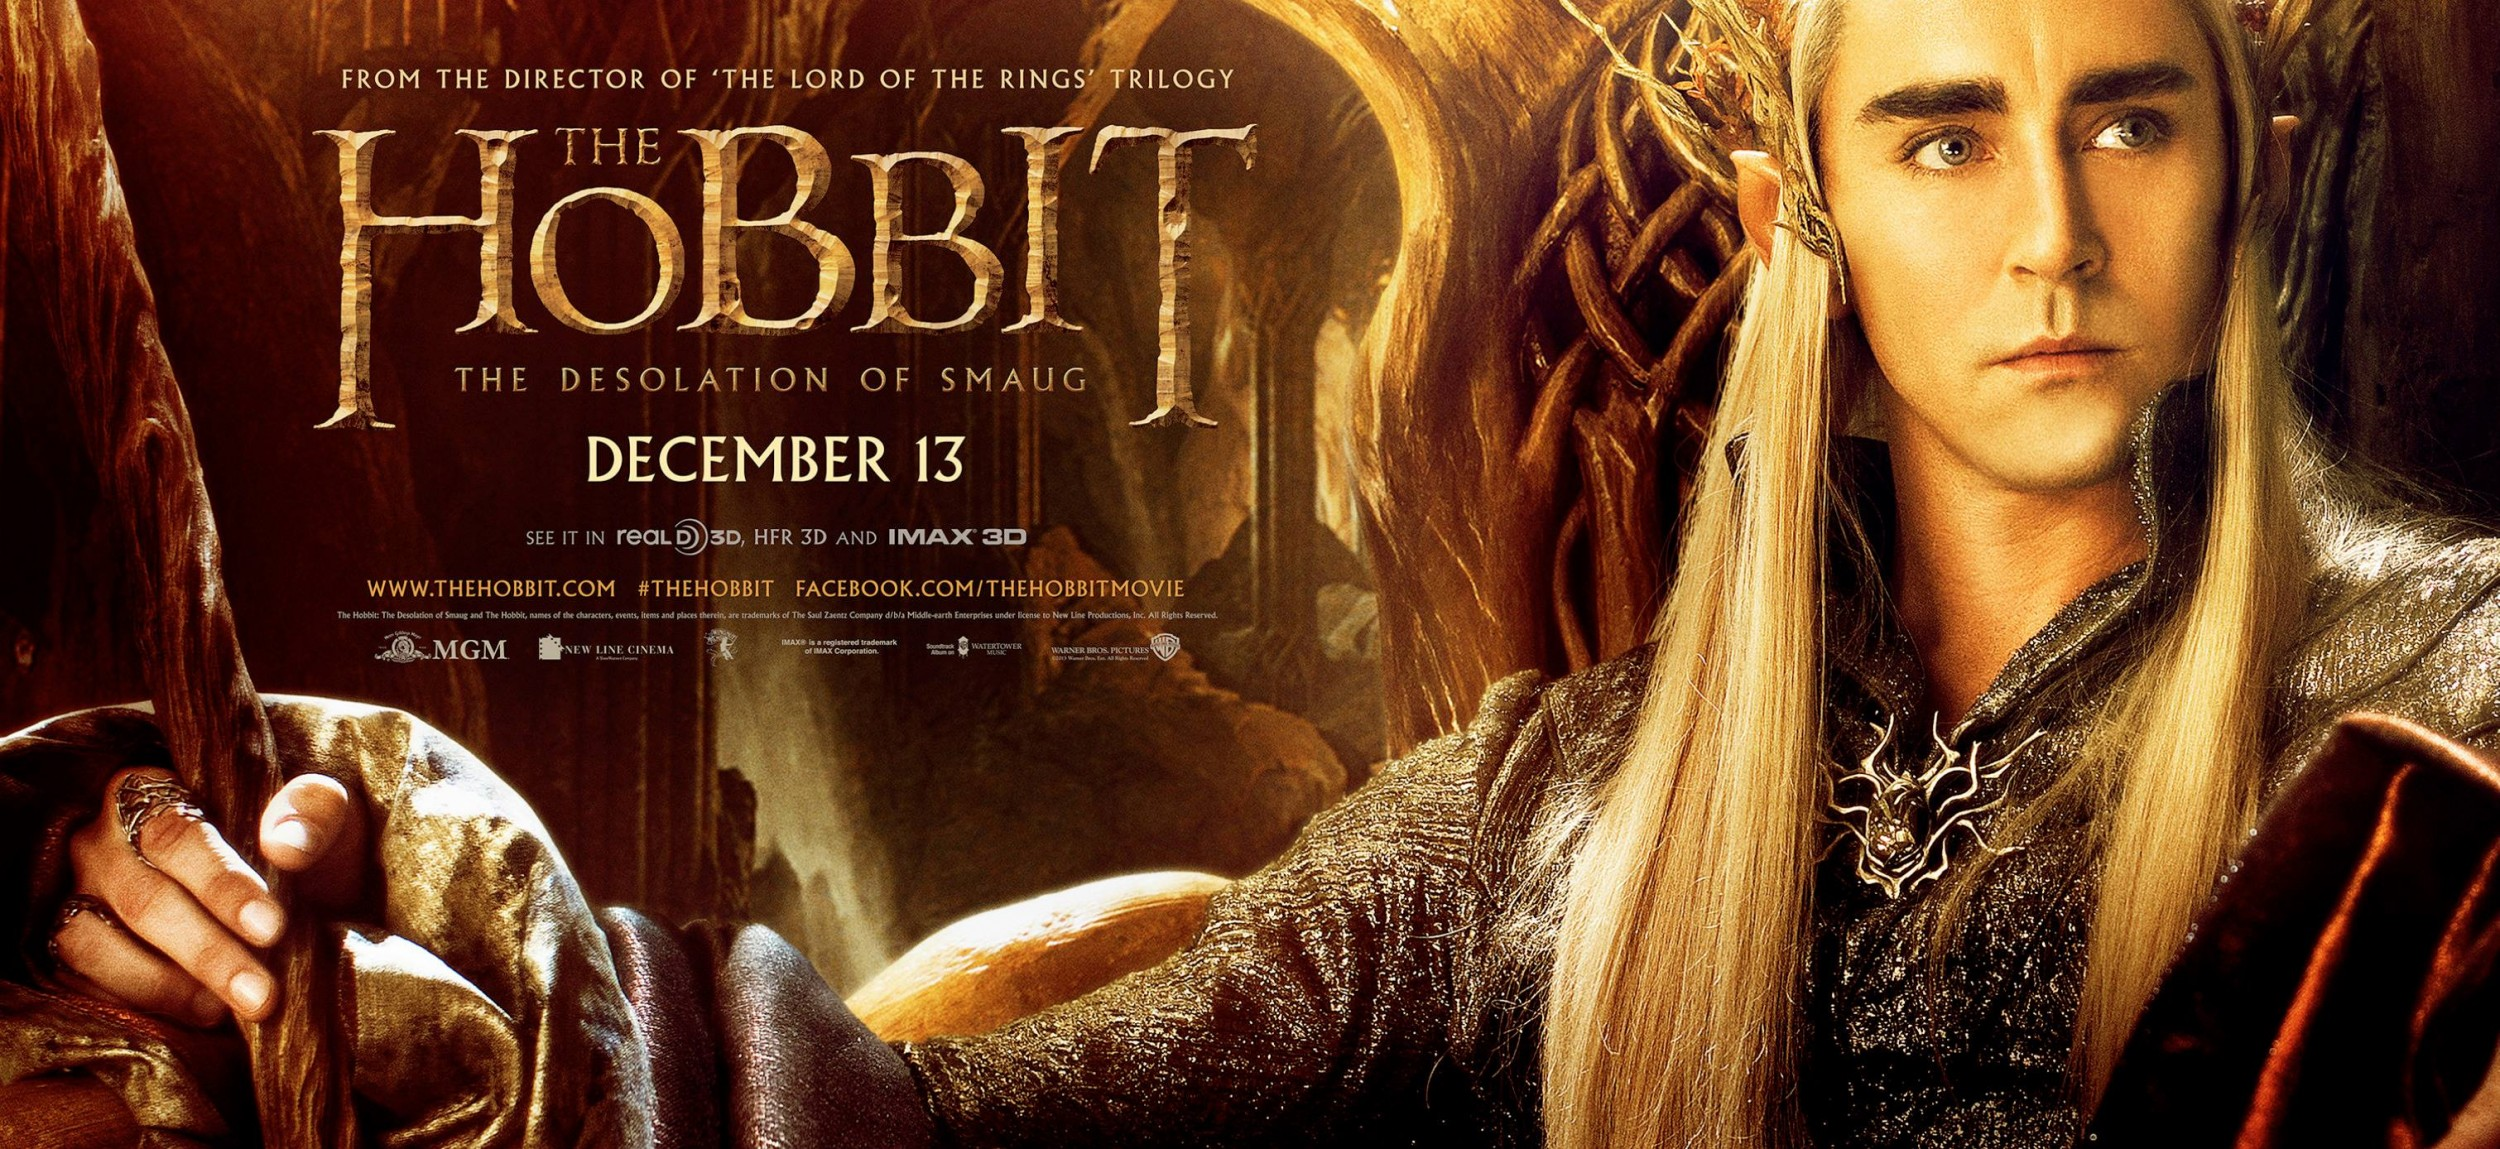 The Hobbit: The Desolation of Smaug - 915.9KB